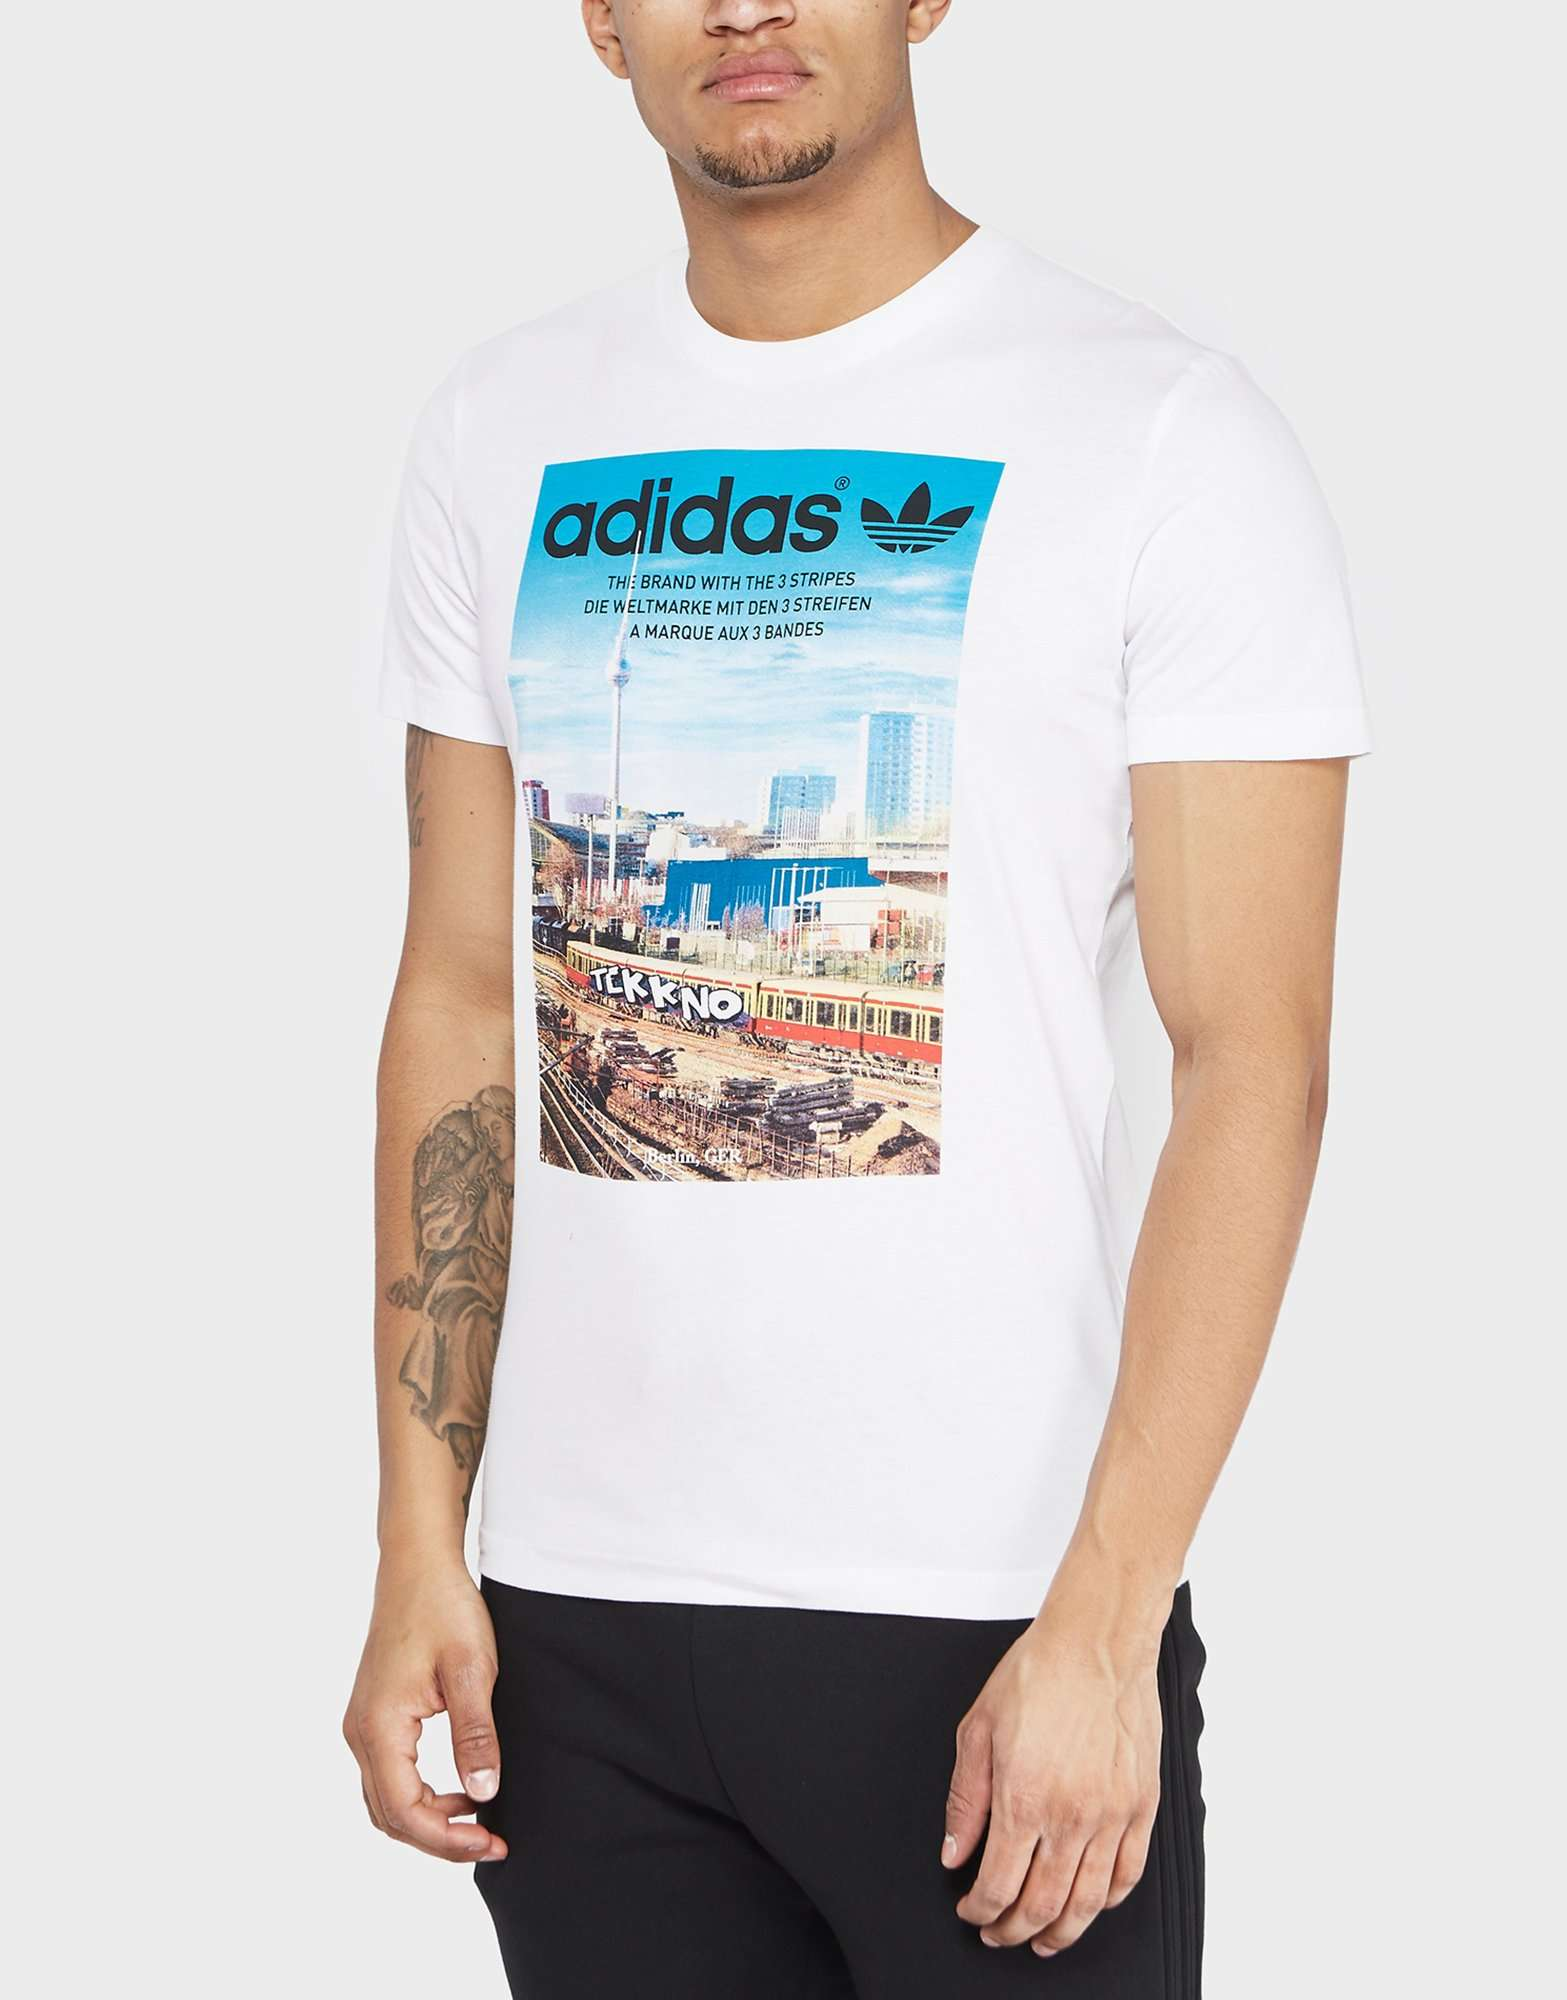 Sleeve T Menswear Short Originals ShirtScotts Adidas City Berlin ymw8NPvn0O